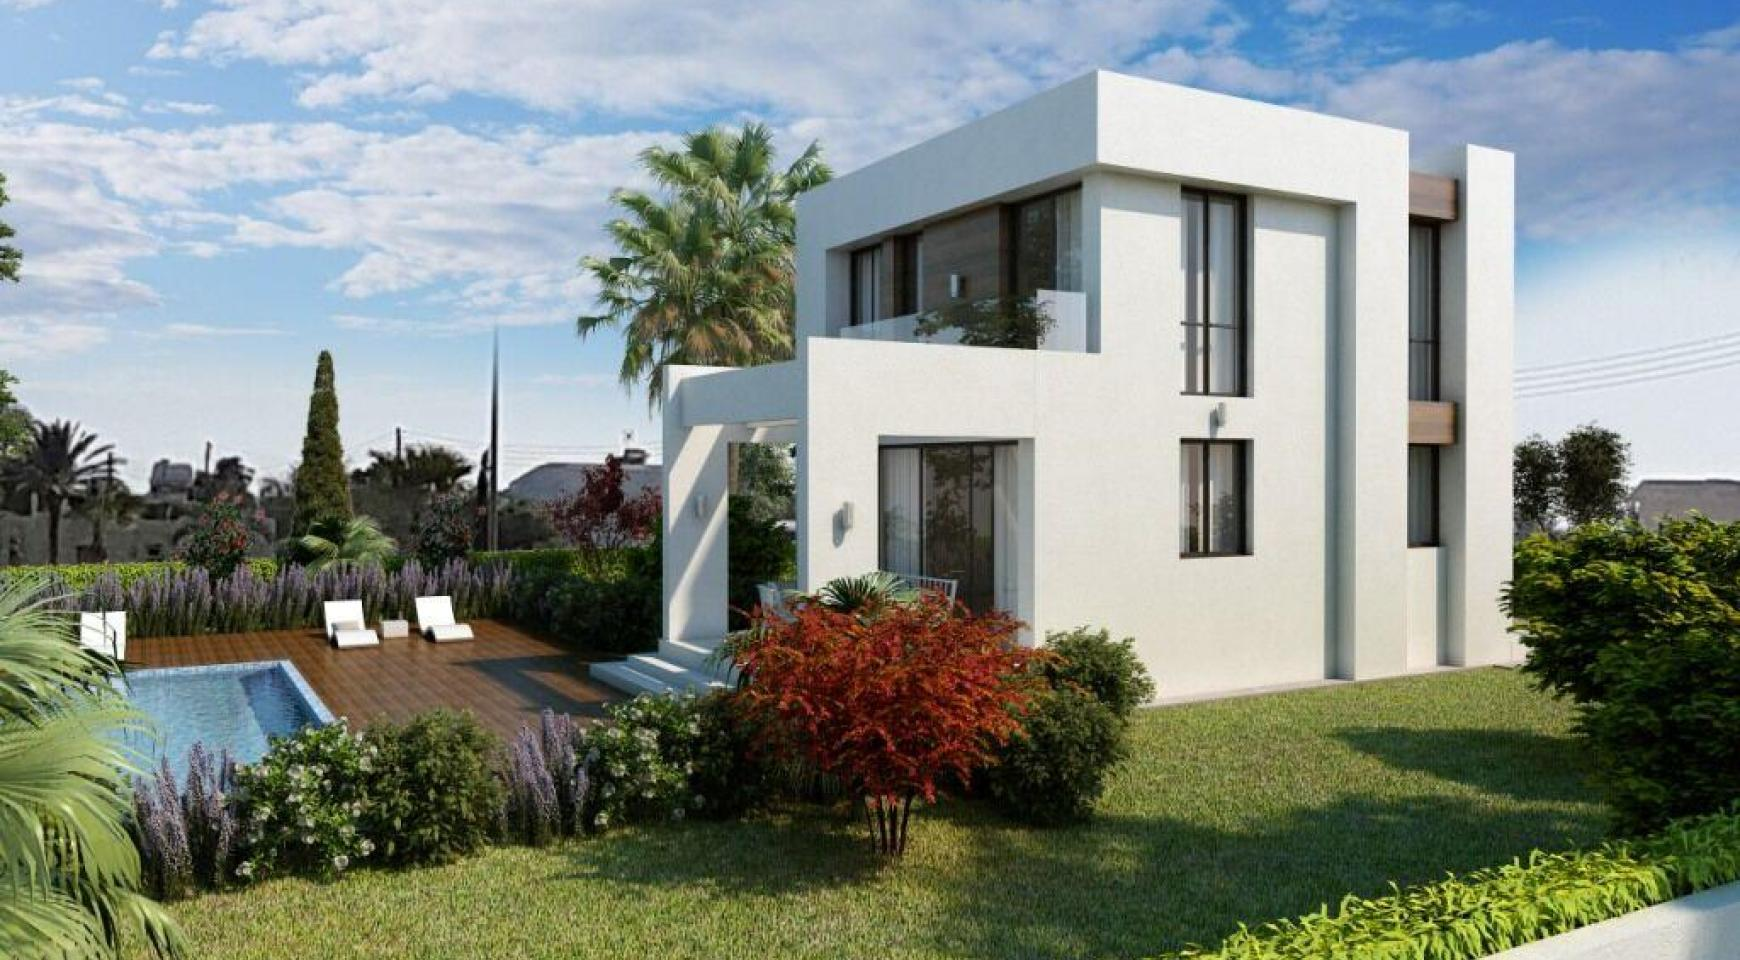 3 Bedroom Villa within a Complex near the Beach - 2